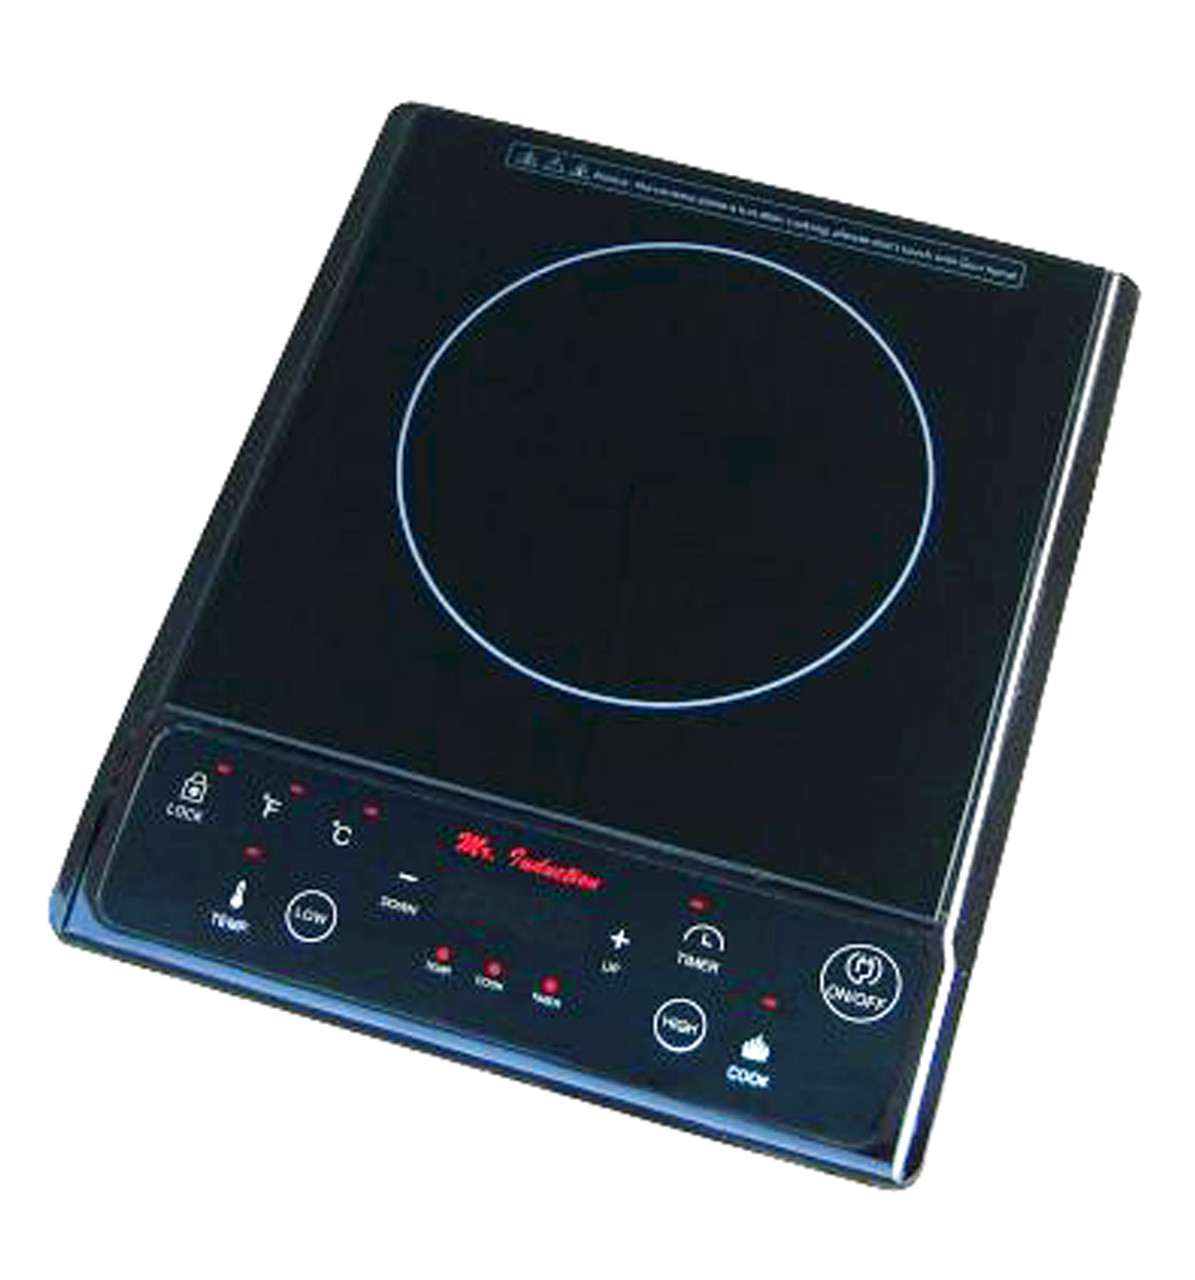 Induction Cooktop (flameless)